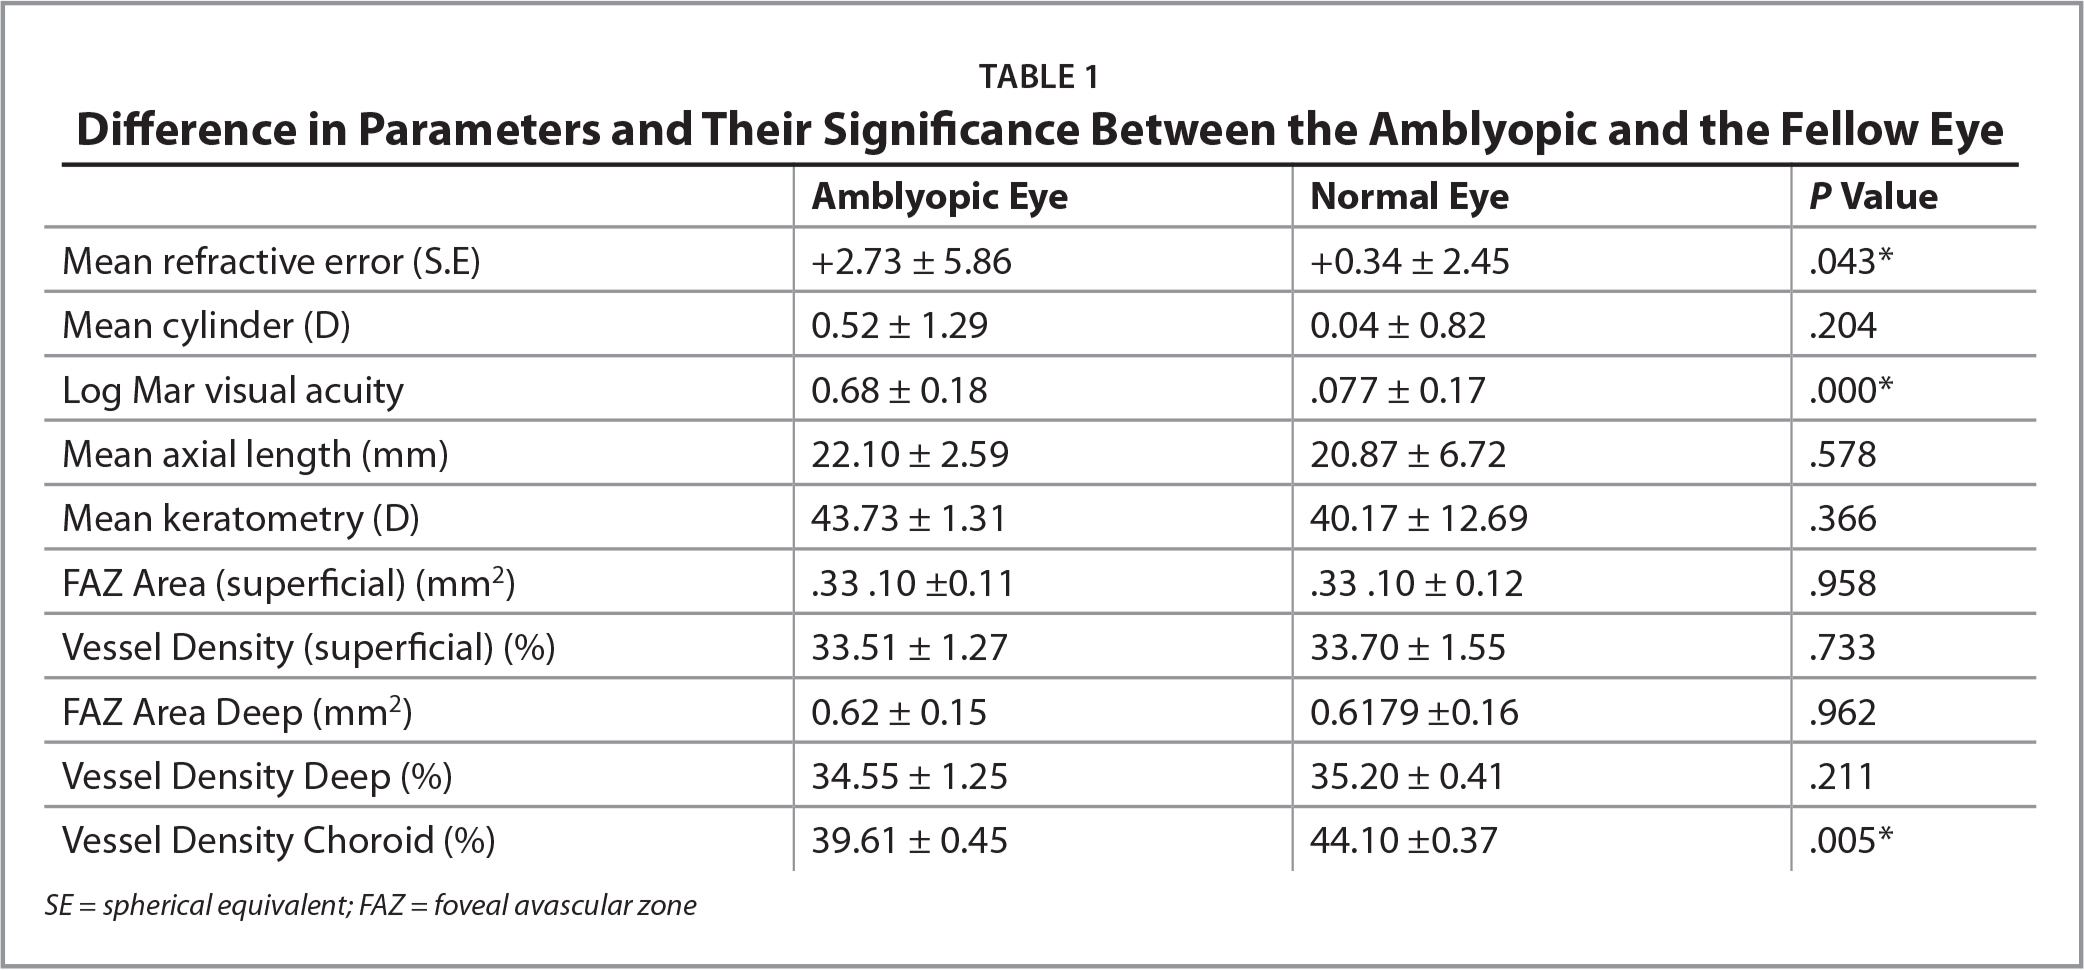 Difference in Parameters and Their Significance Between the Amblyopic and the Fellow Eye